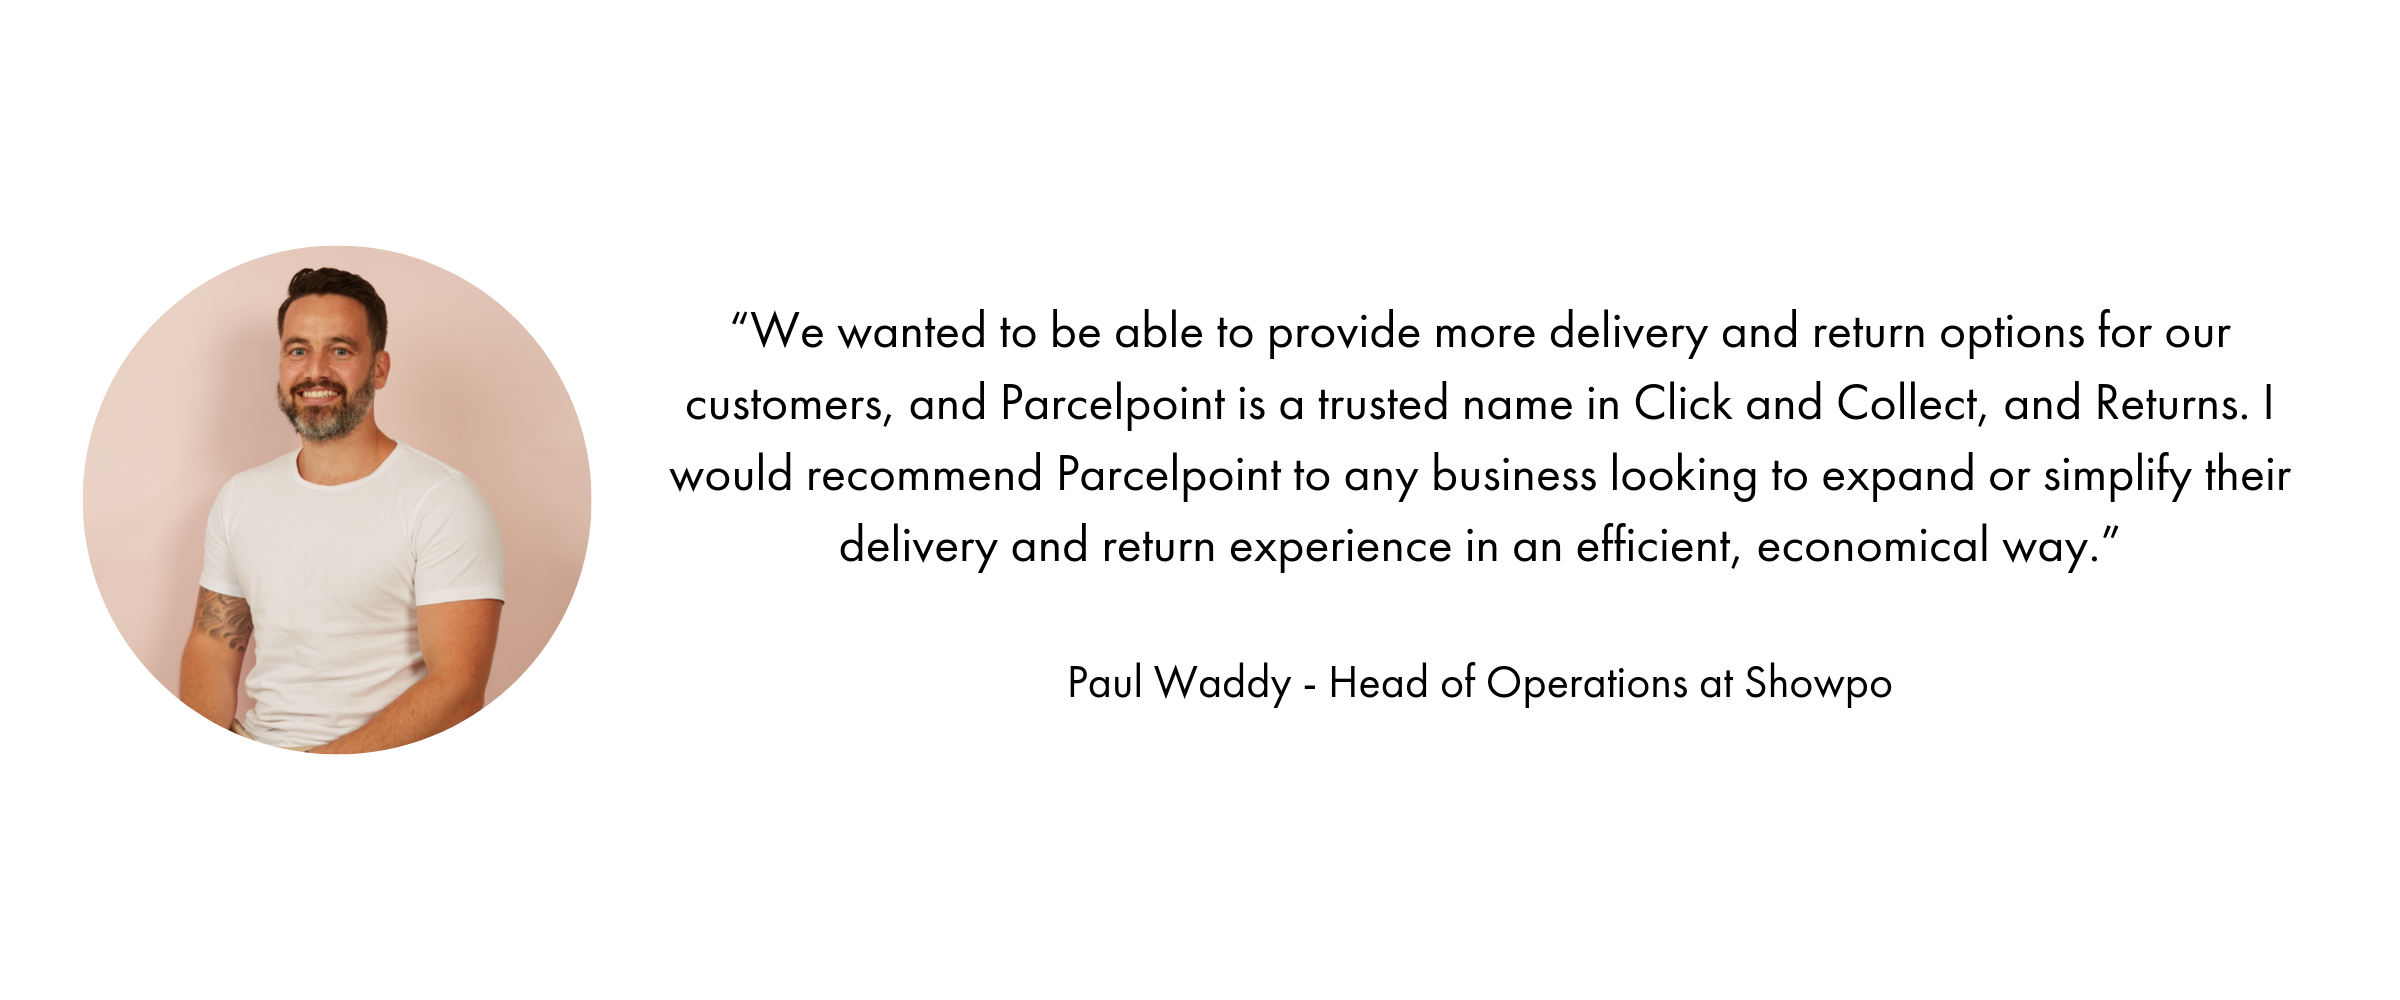 Paul Waddy former head of operations at showpo testimonial for Parcelpoint